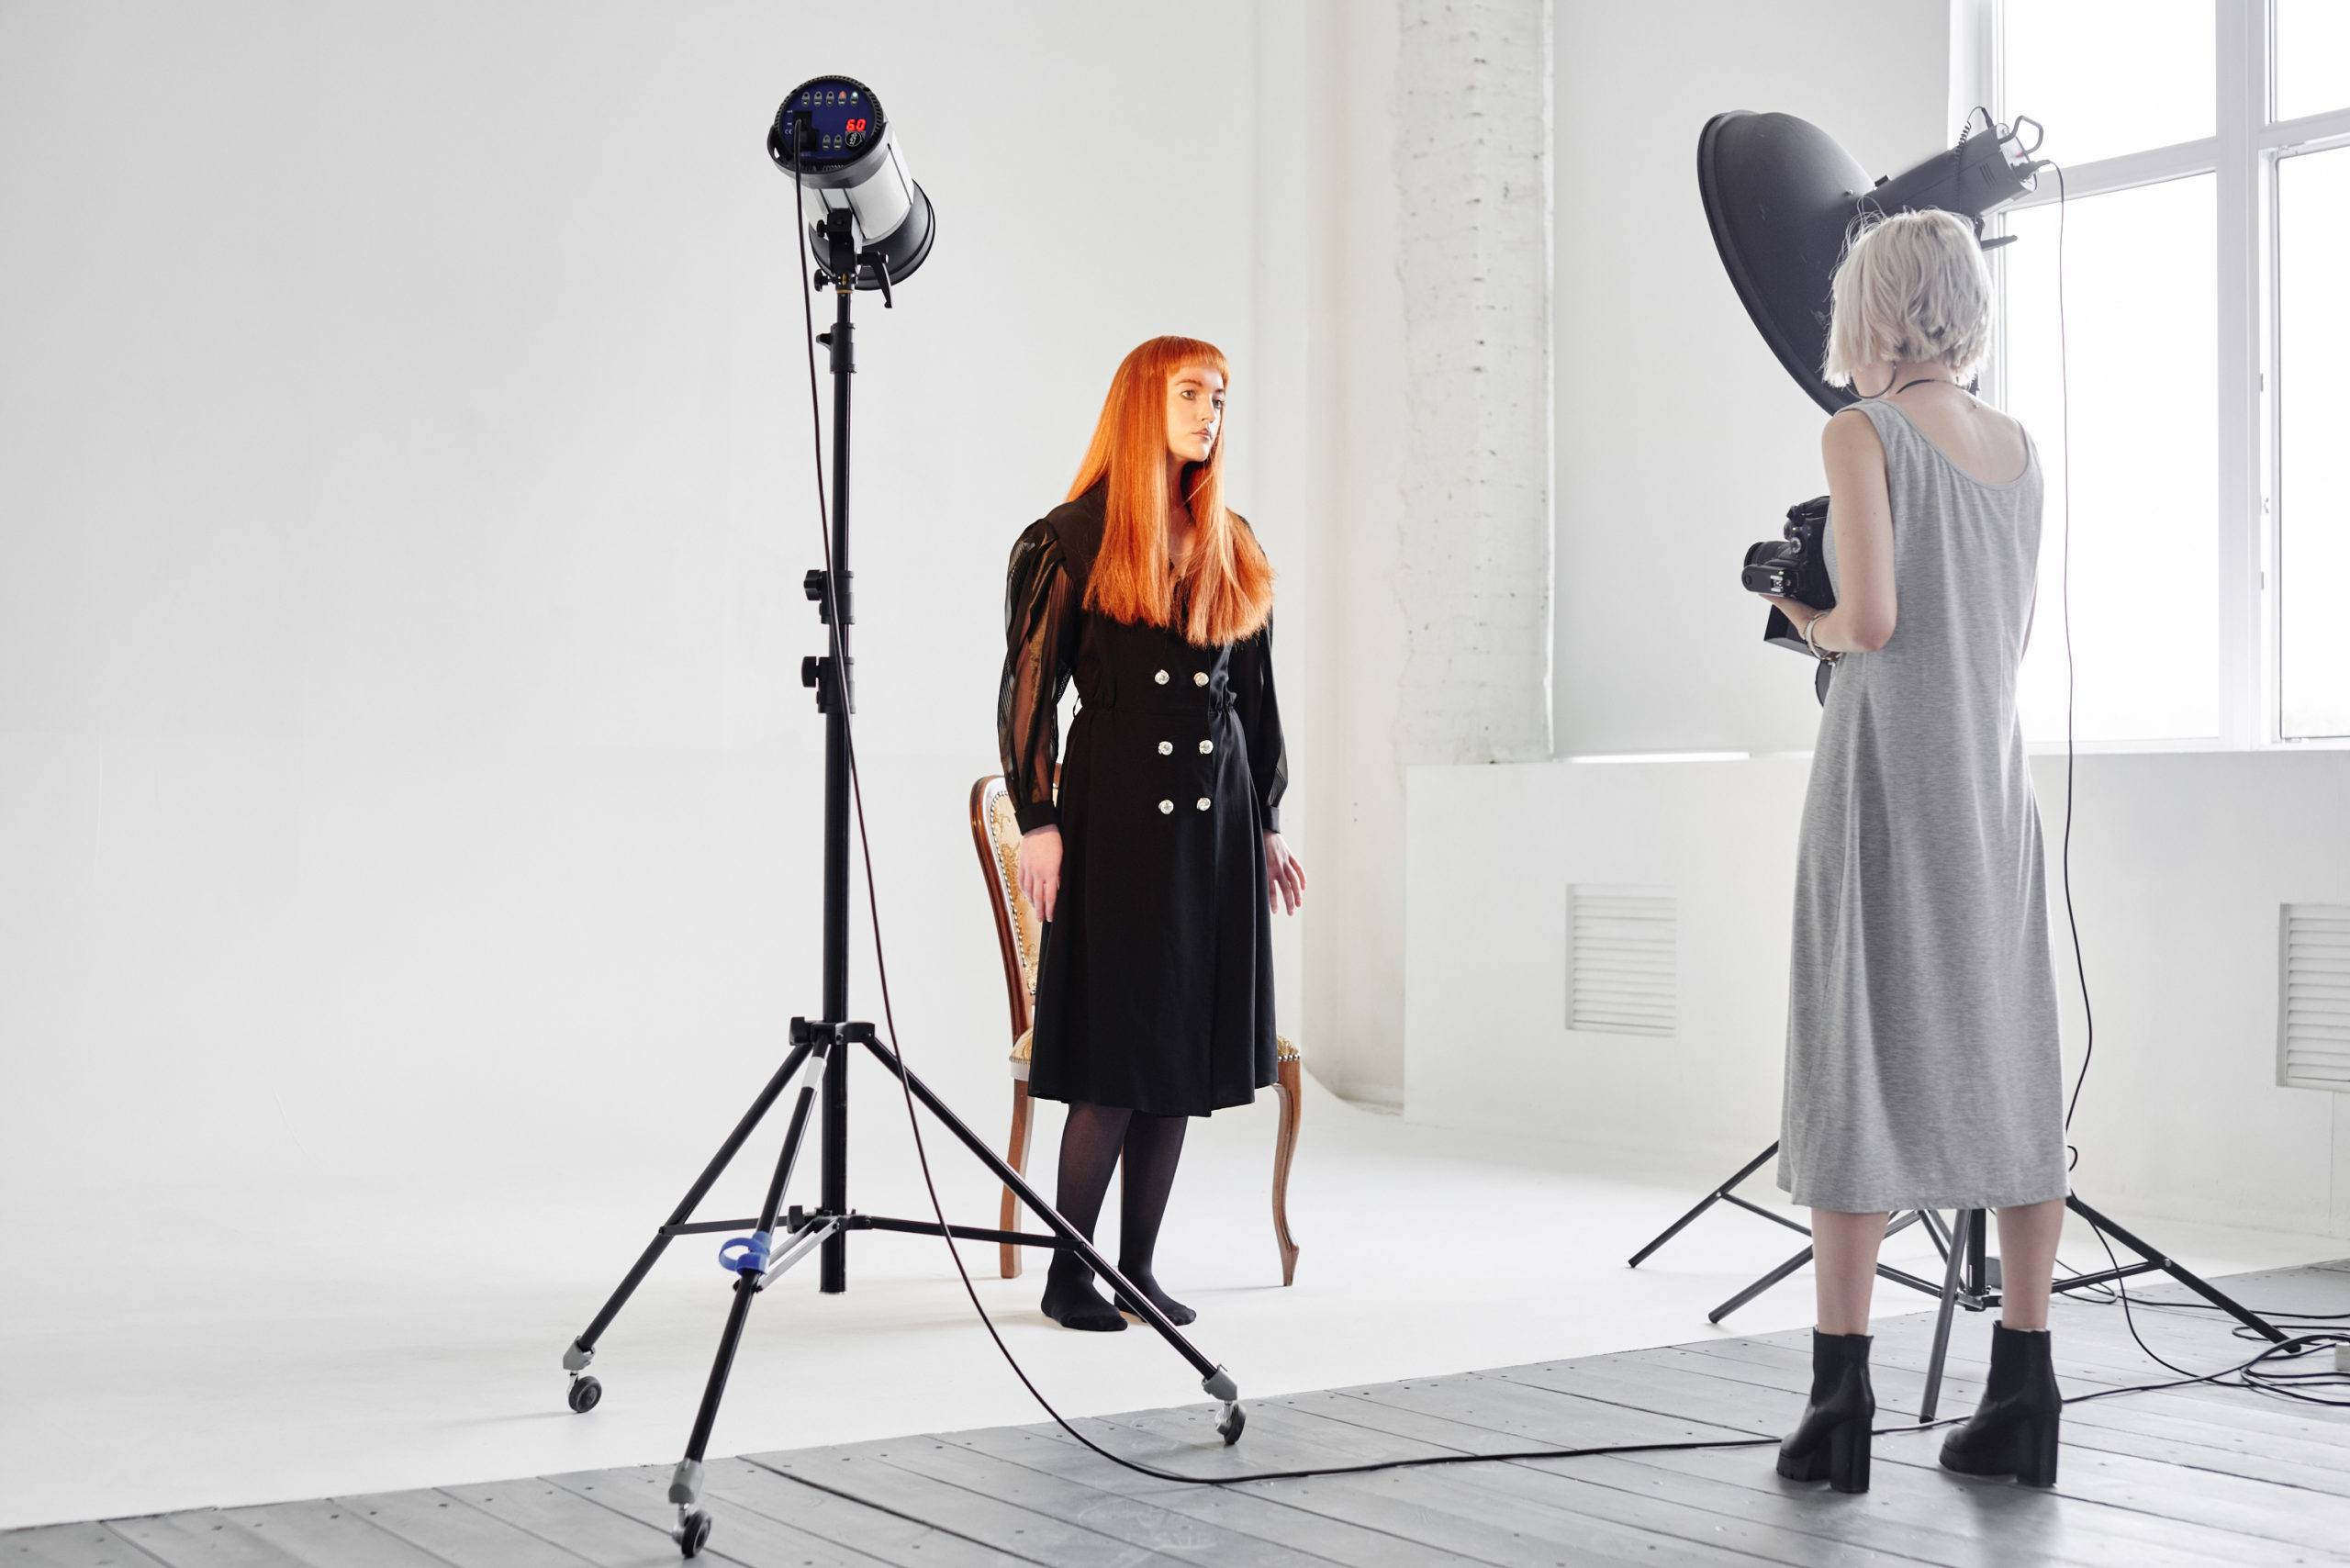 So you want to be a Fashion Photographer? 5 Tips to Breaking into Fashion Photography!